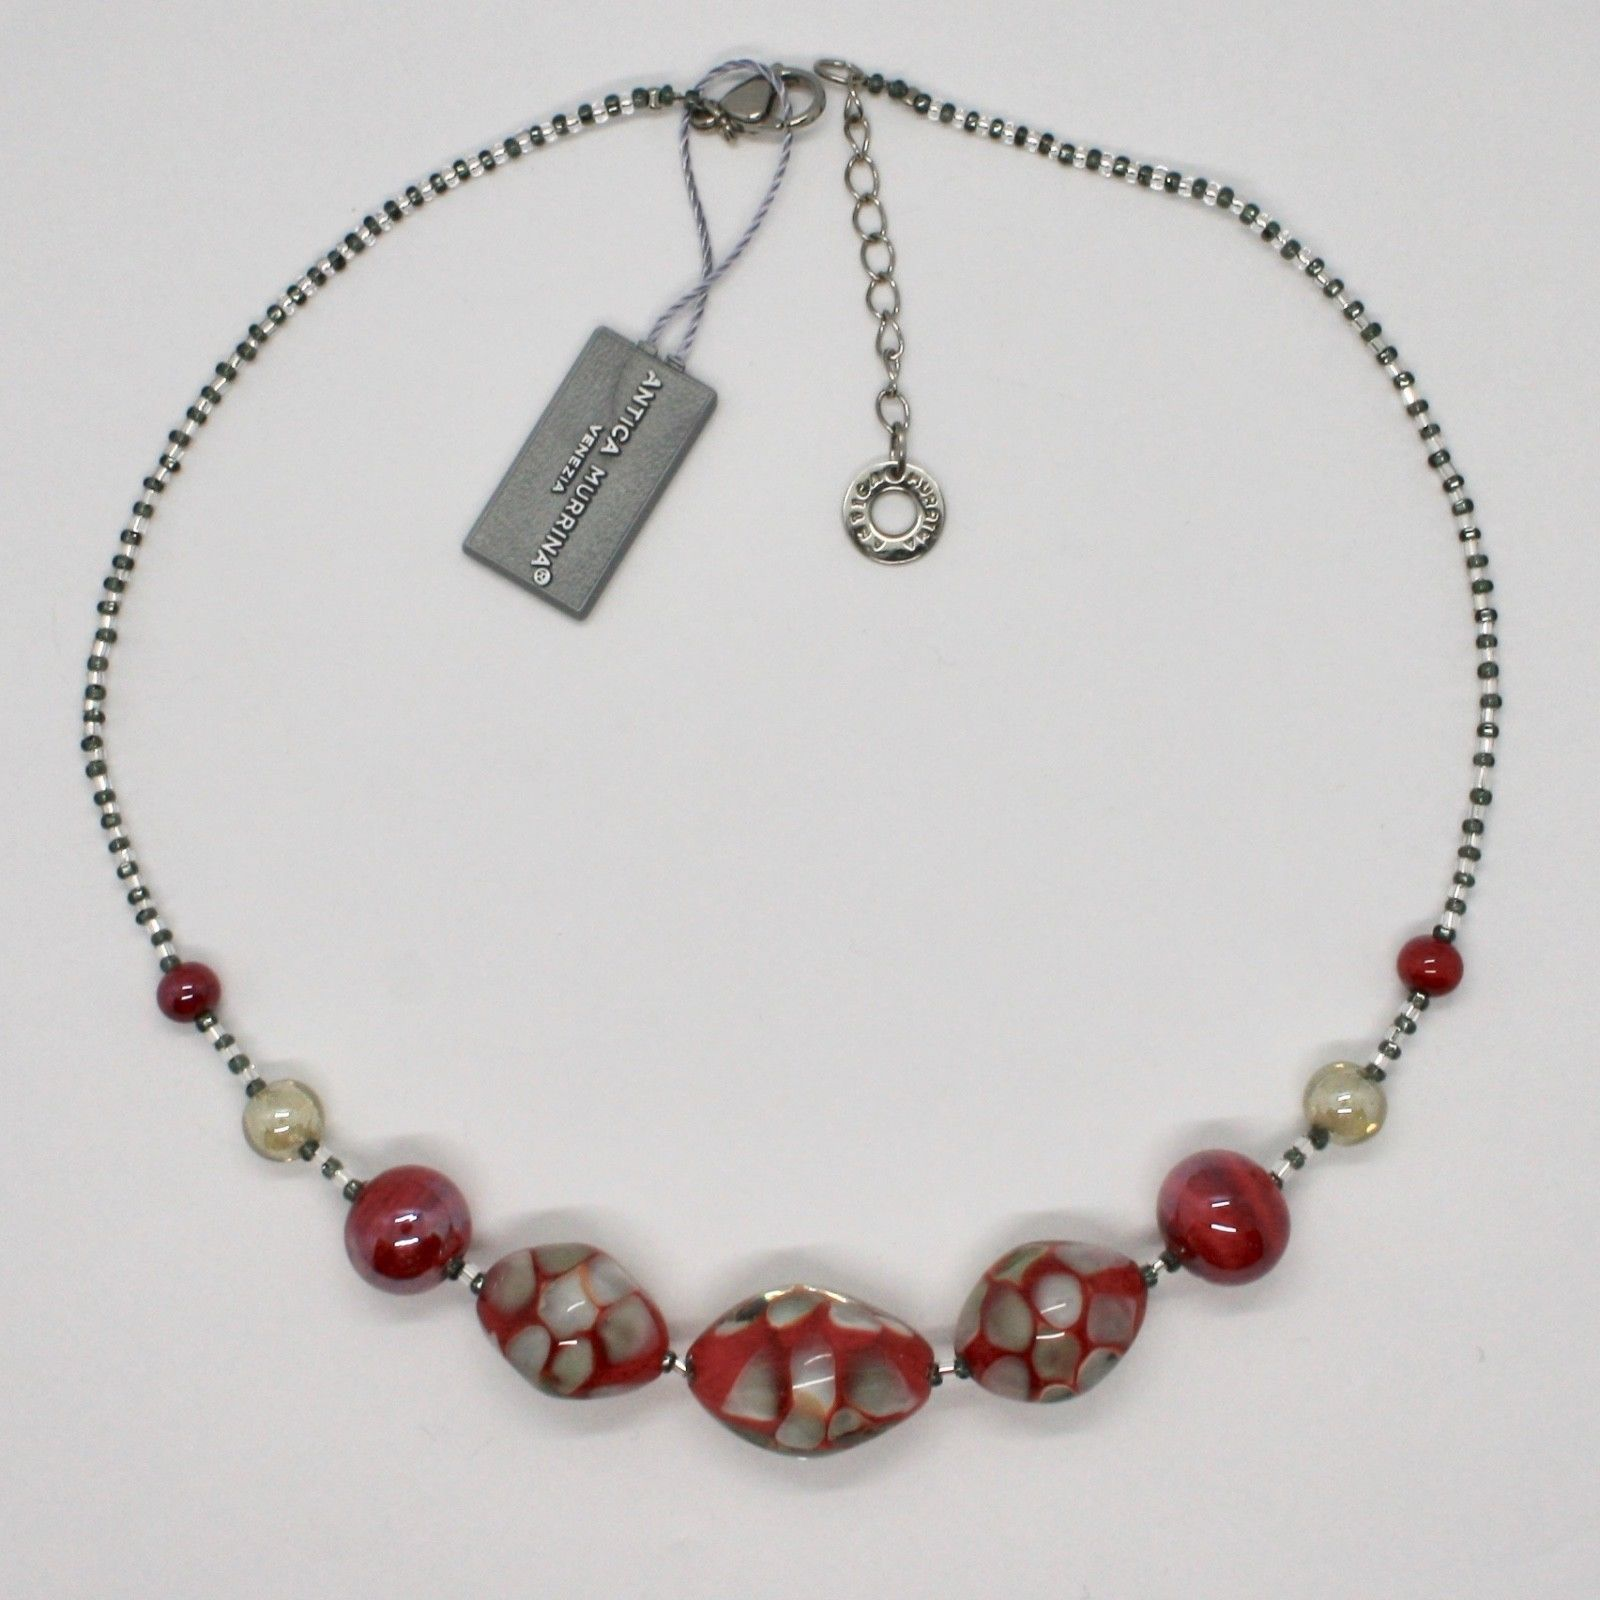 NECKLACE ANTICA MURRINA VENEZIA WITH MURANO GLASS WHITE GREY RED COA11A31